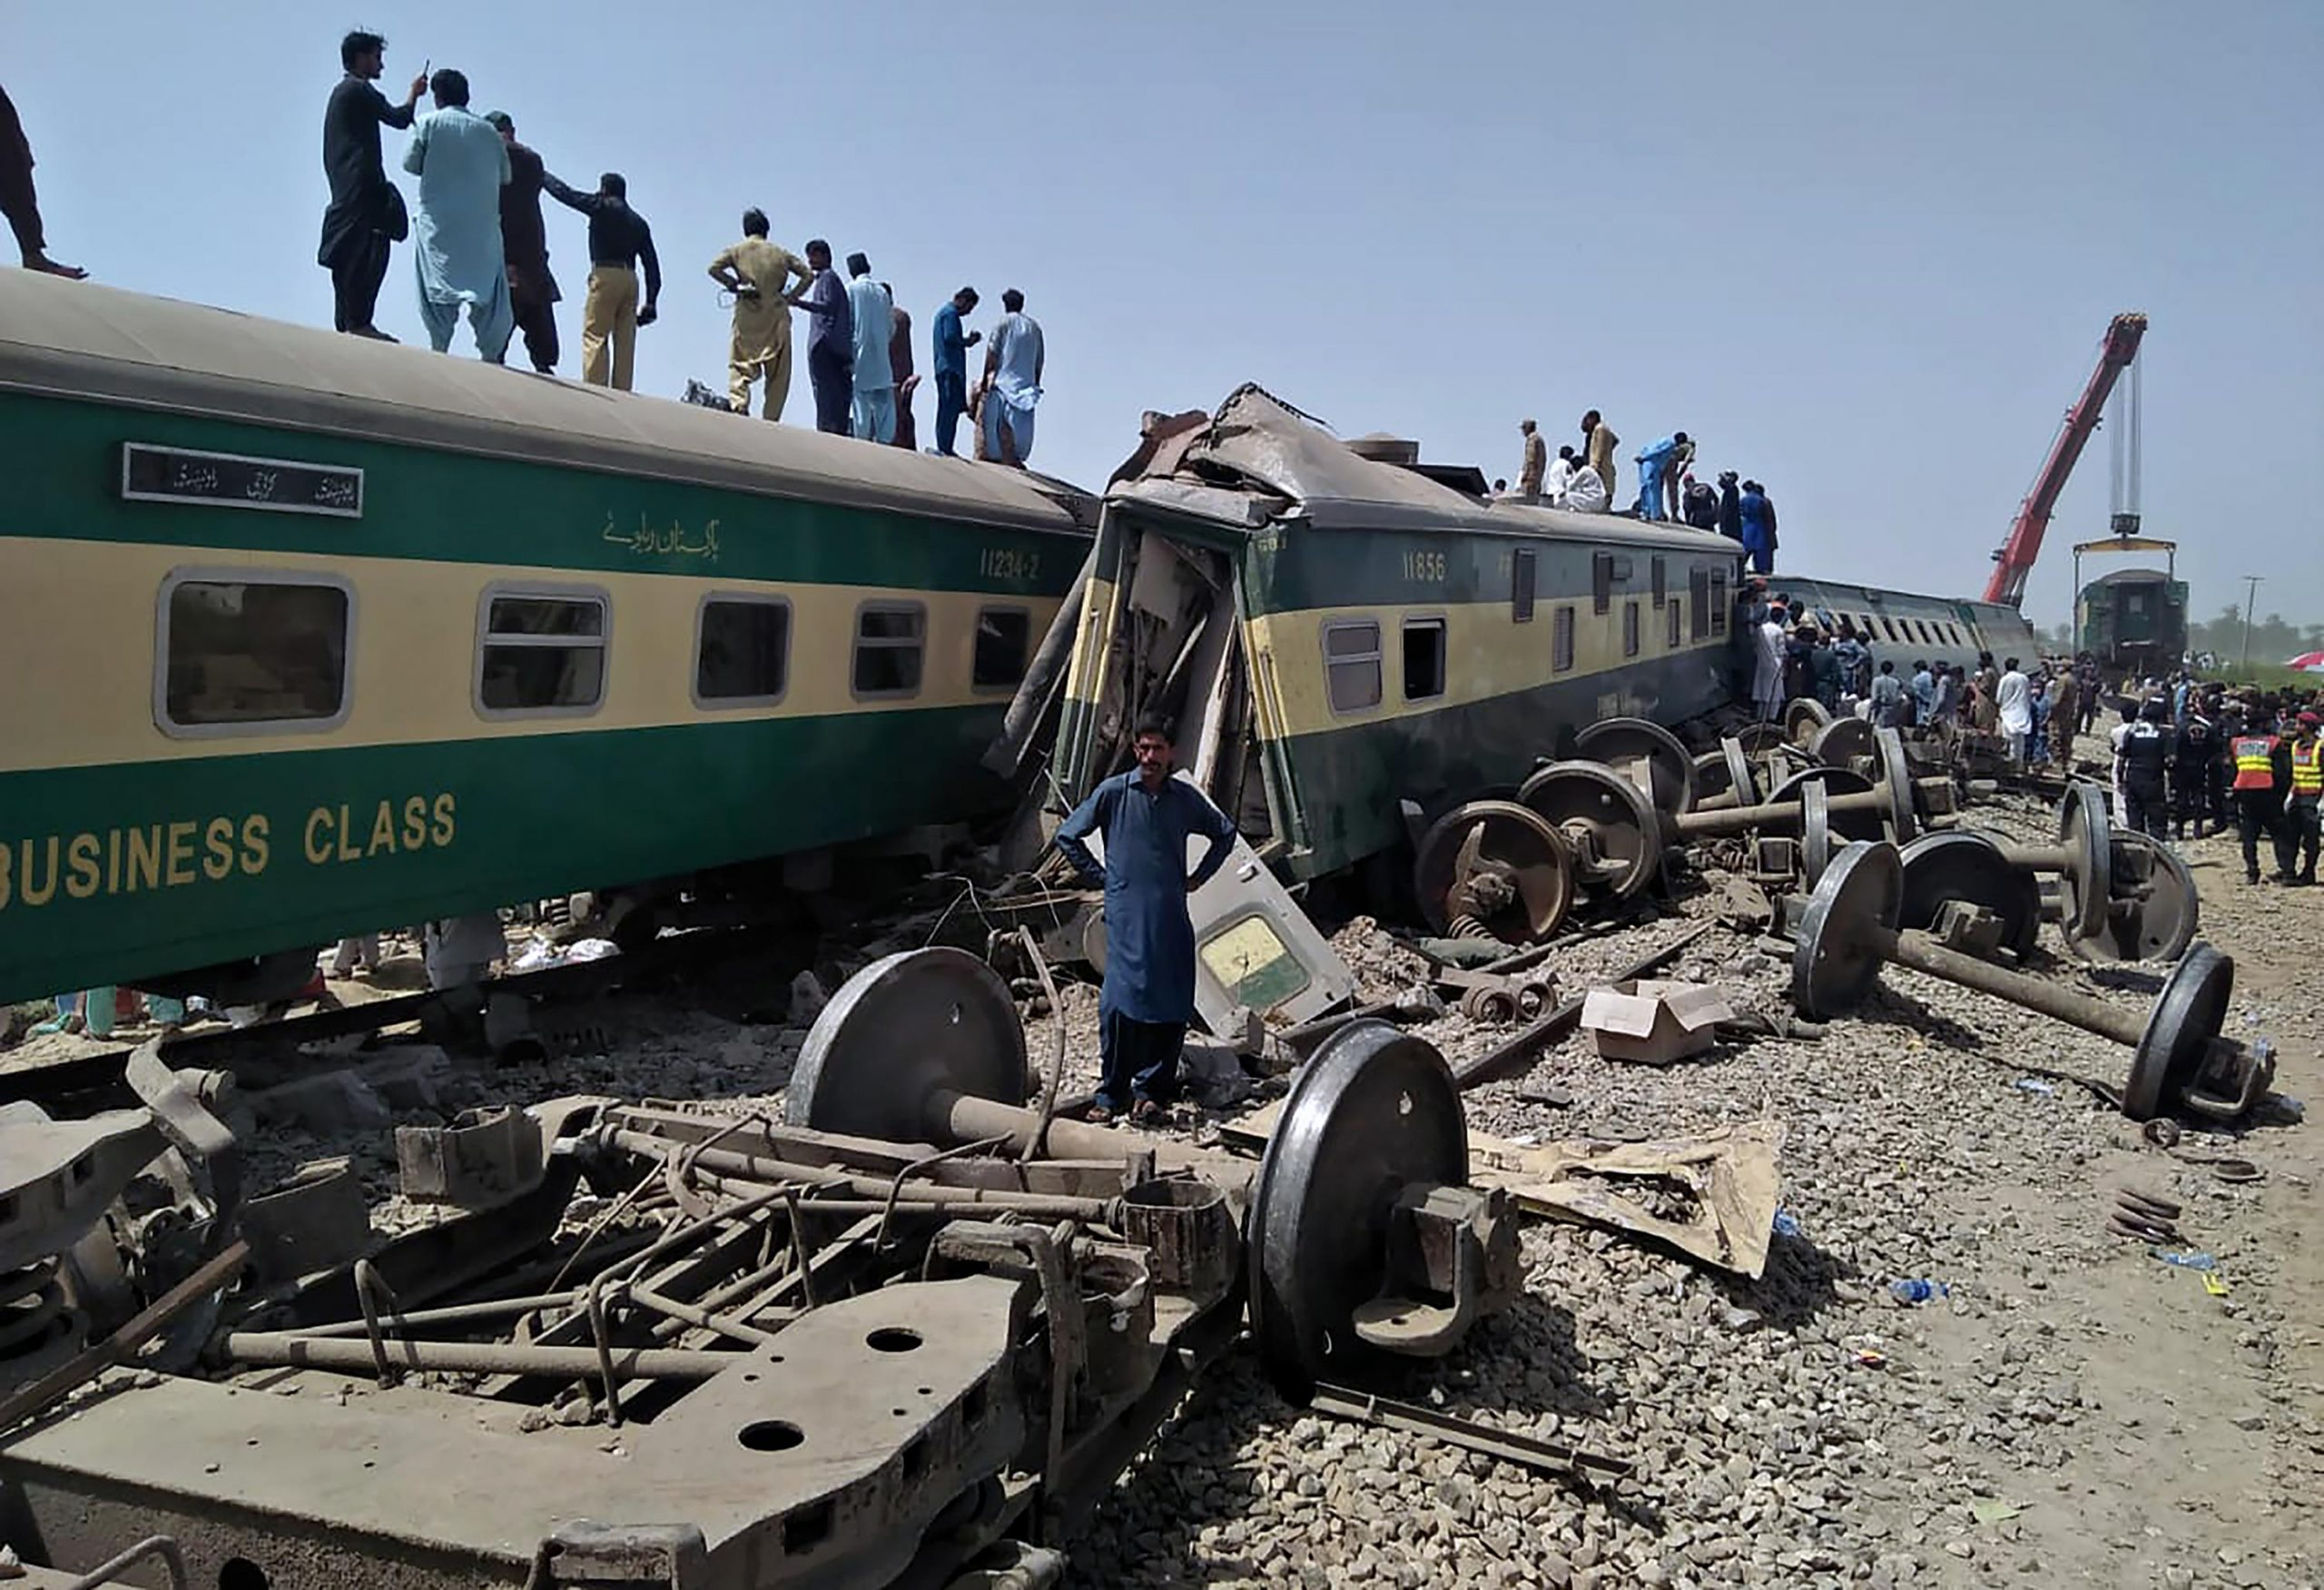 2 trains collide in southern Pakistan, killing 30